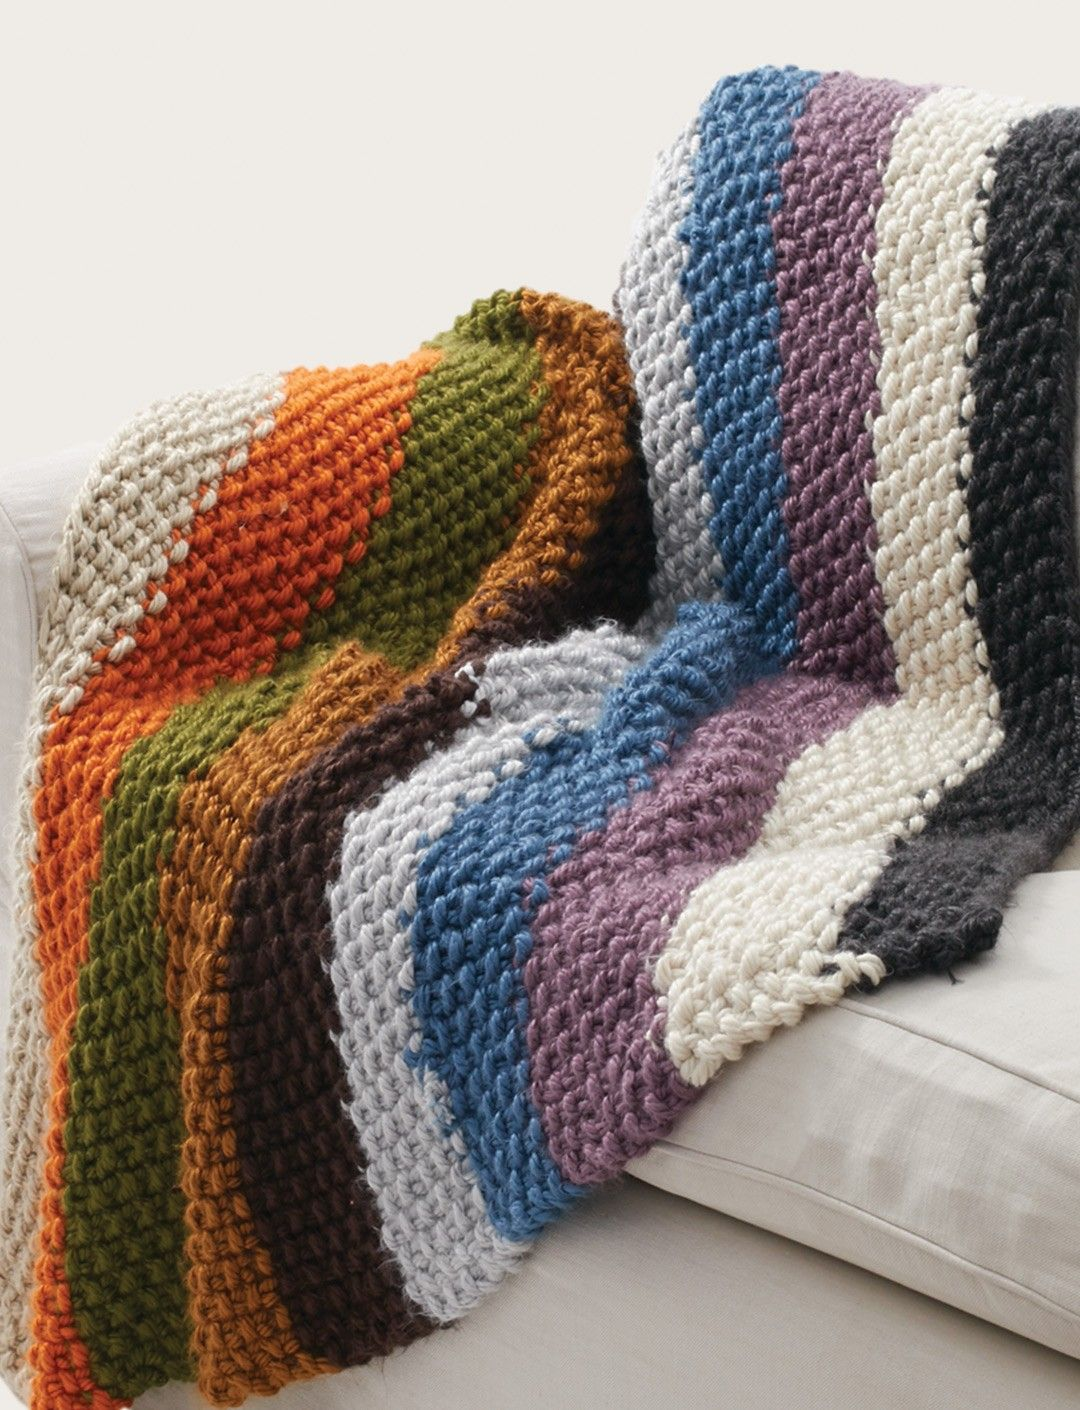 Knitting Quilt Stitch : Bernat seed stitch blanket cozy chunky rainbow striped